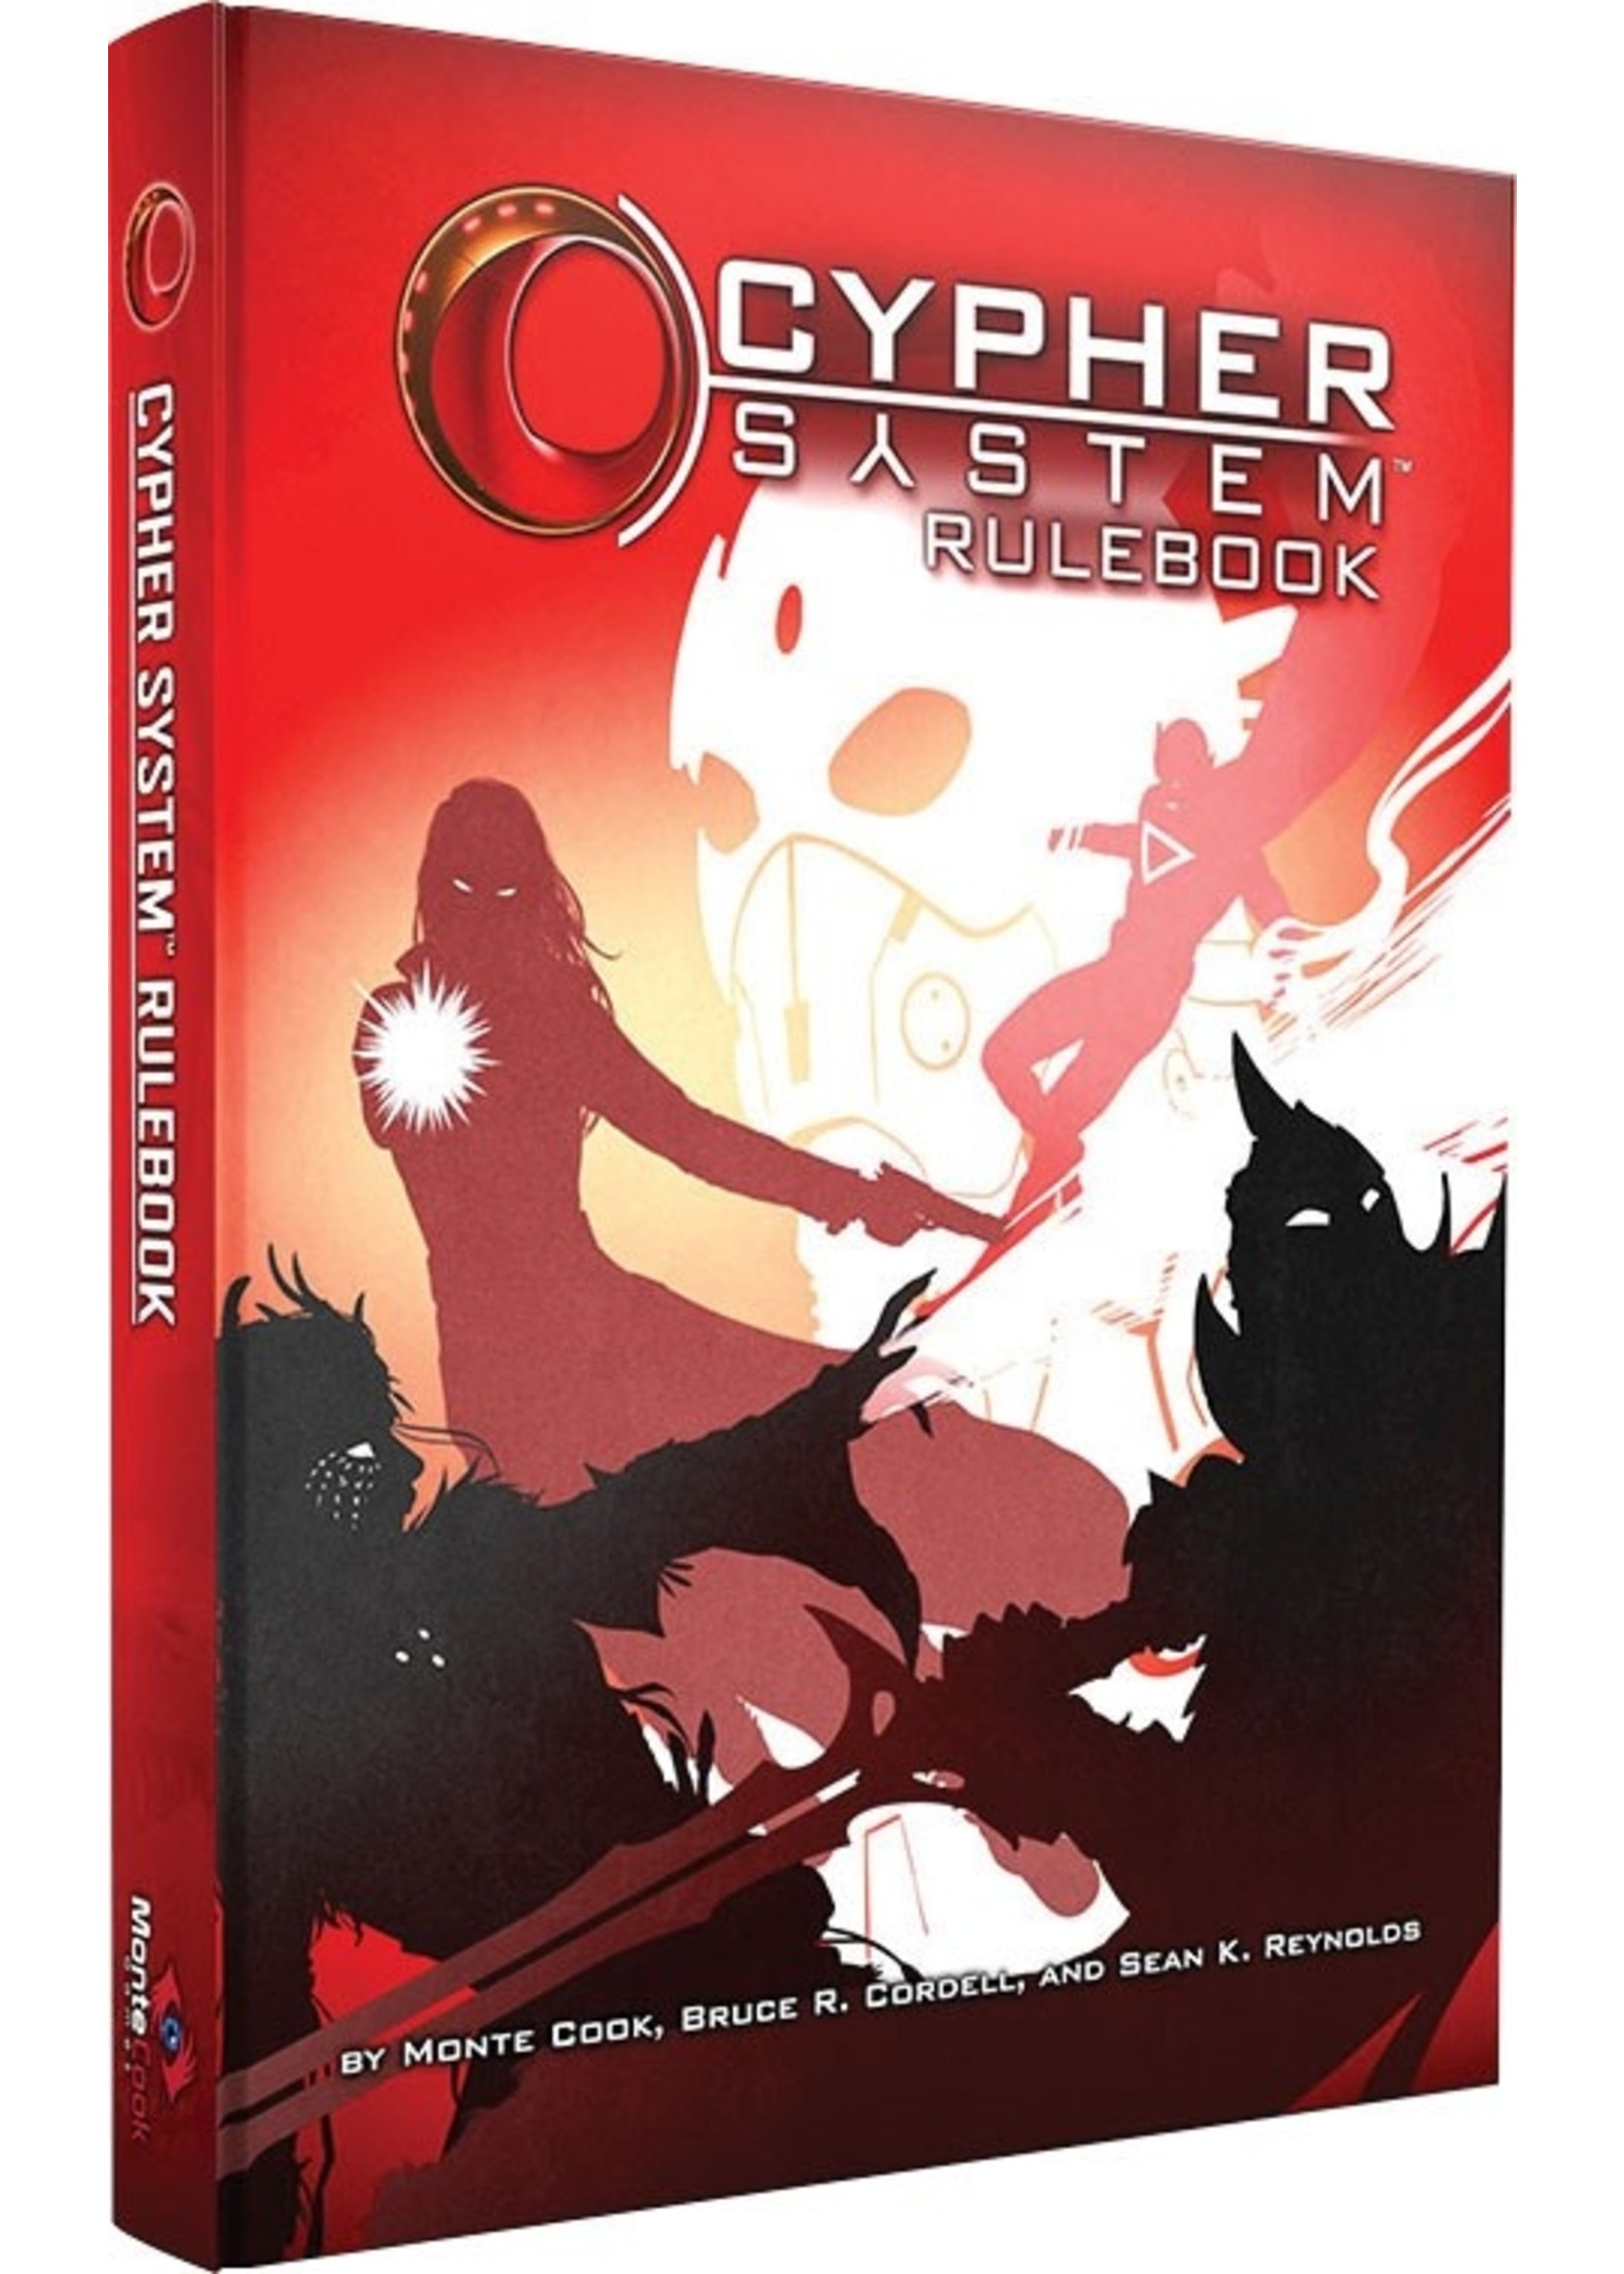 Cypher System RPG 2nd Edition: Rulebook